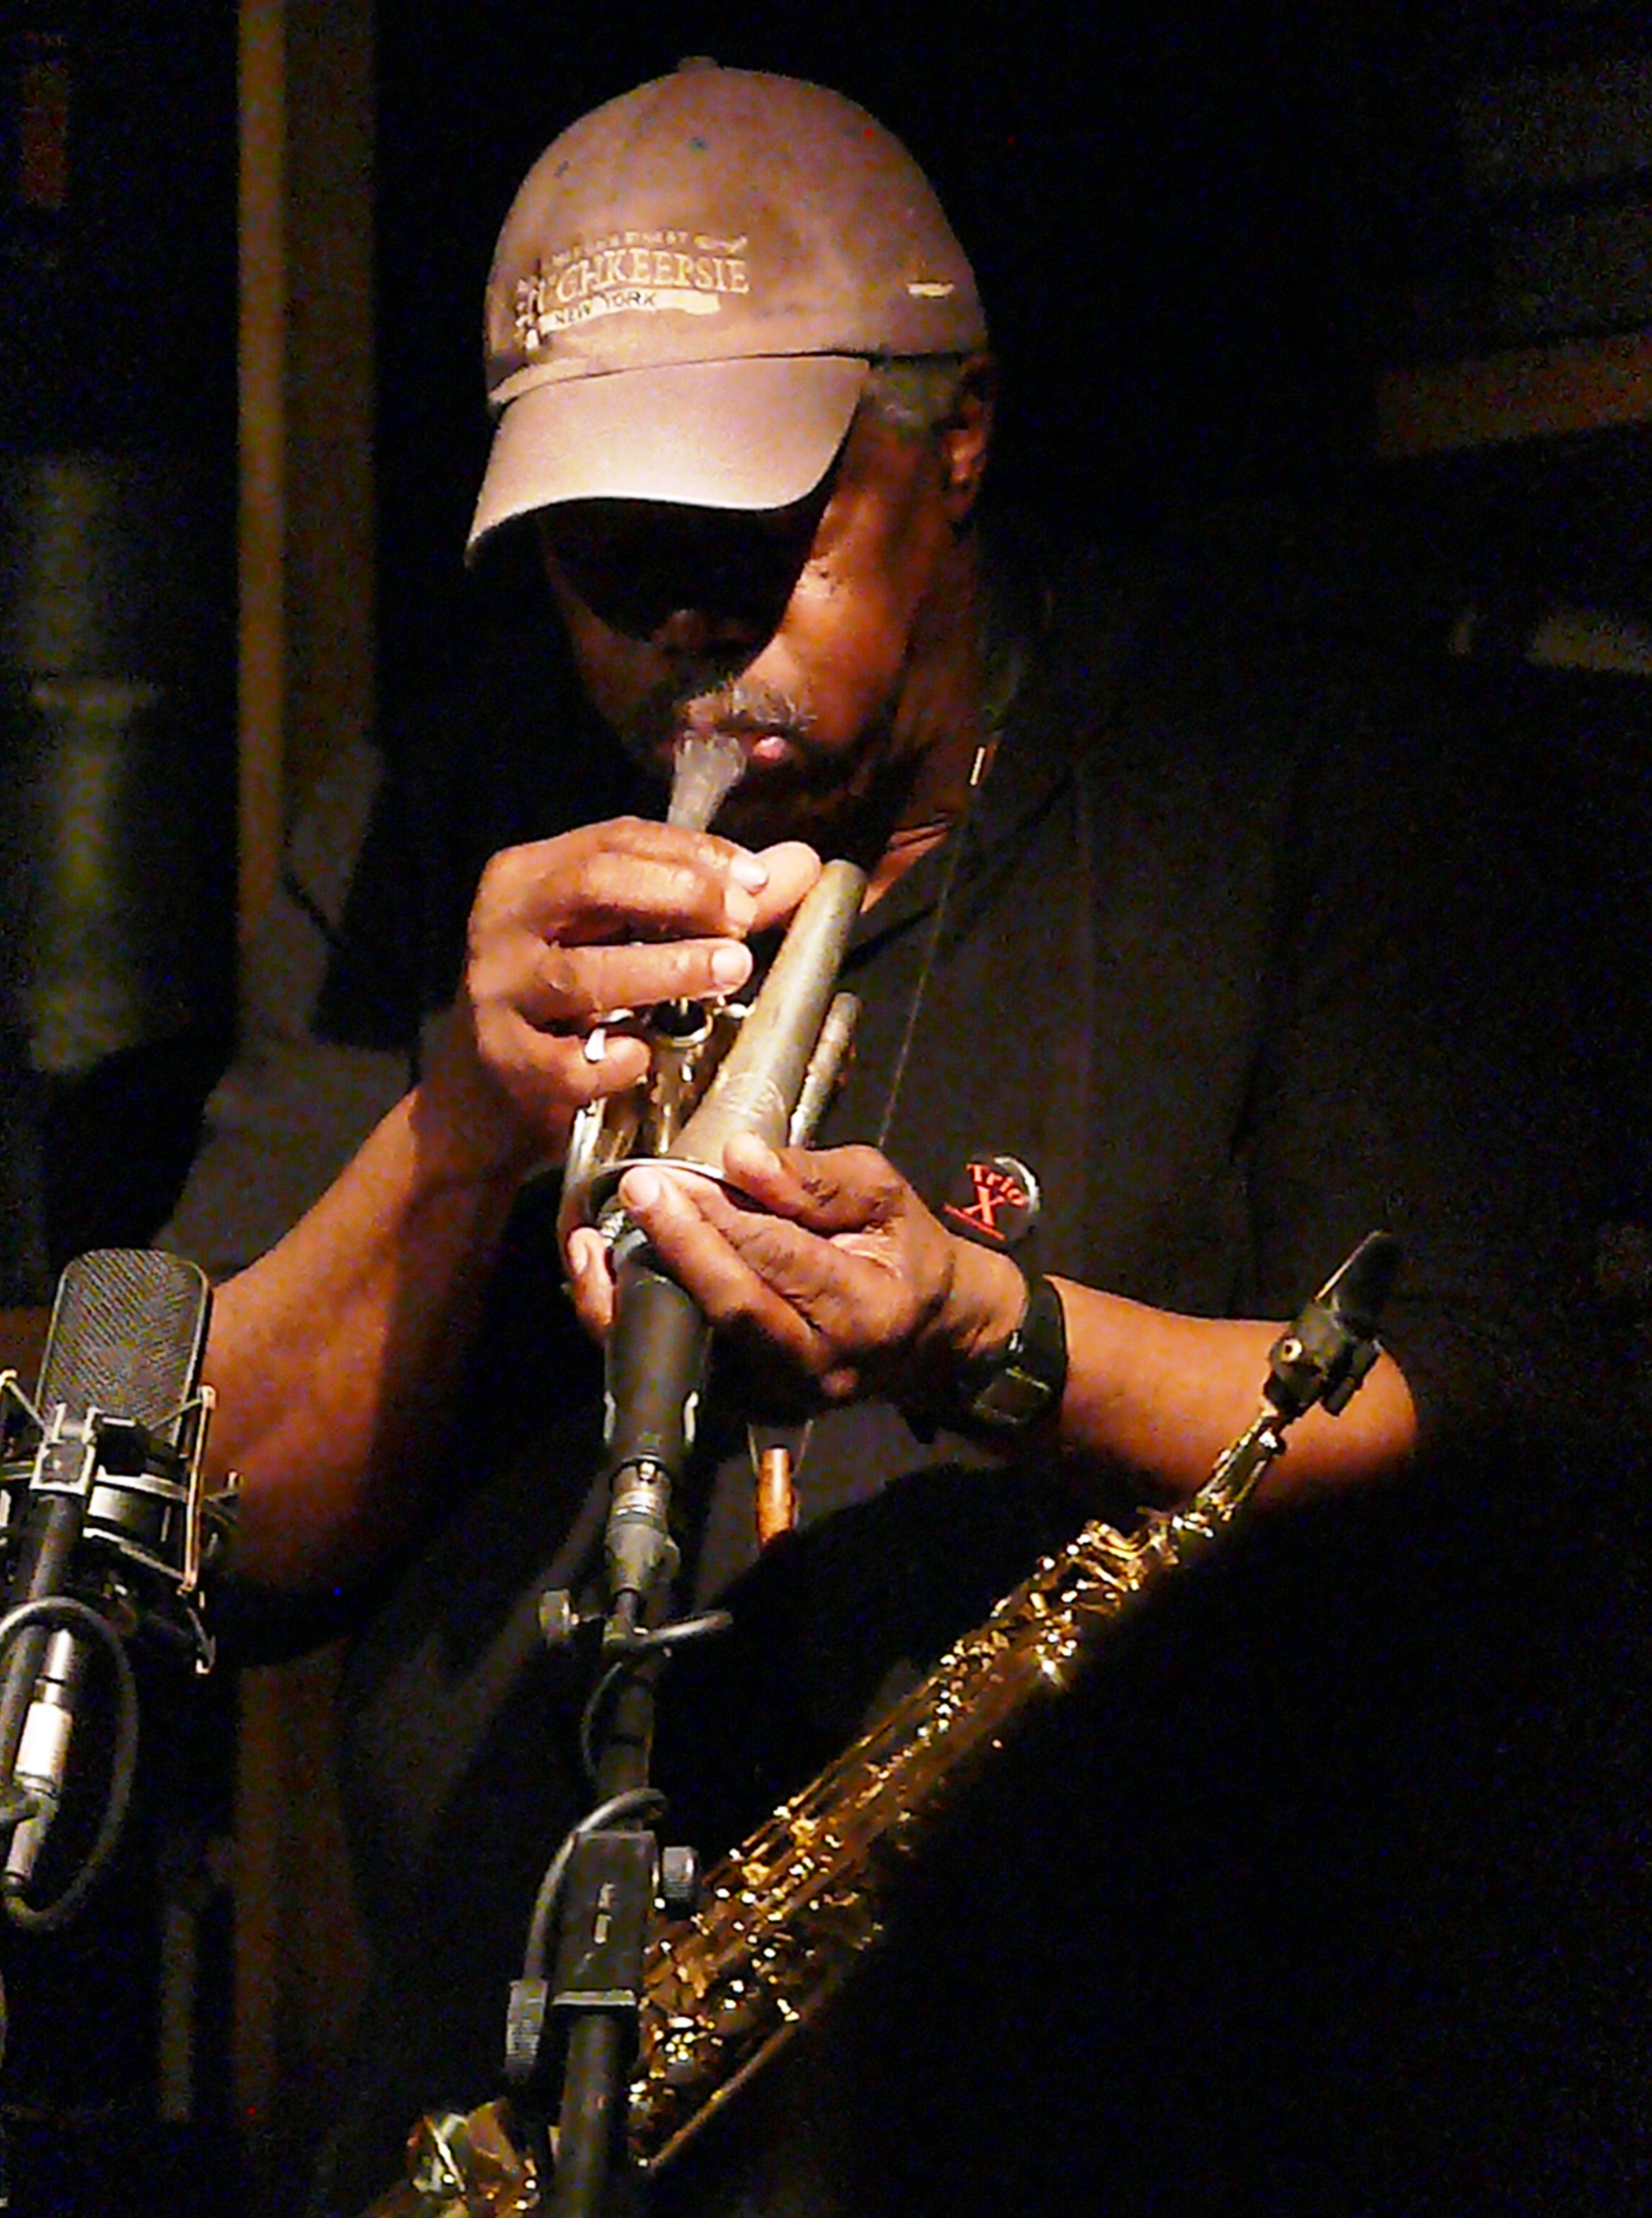 Joe McPhee at Cafe Oto in March 2017